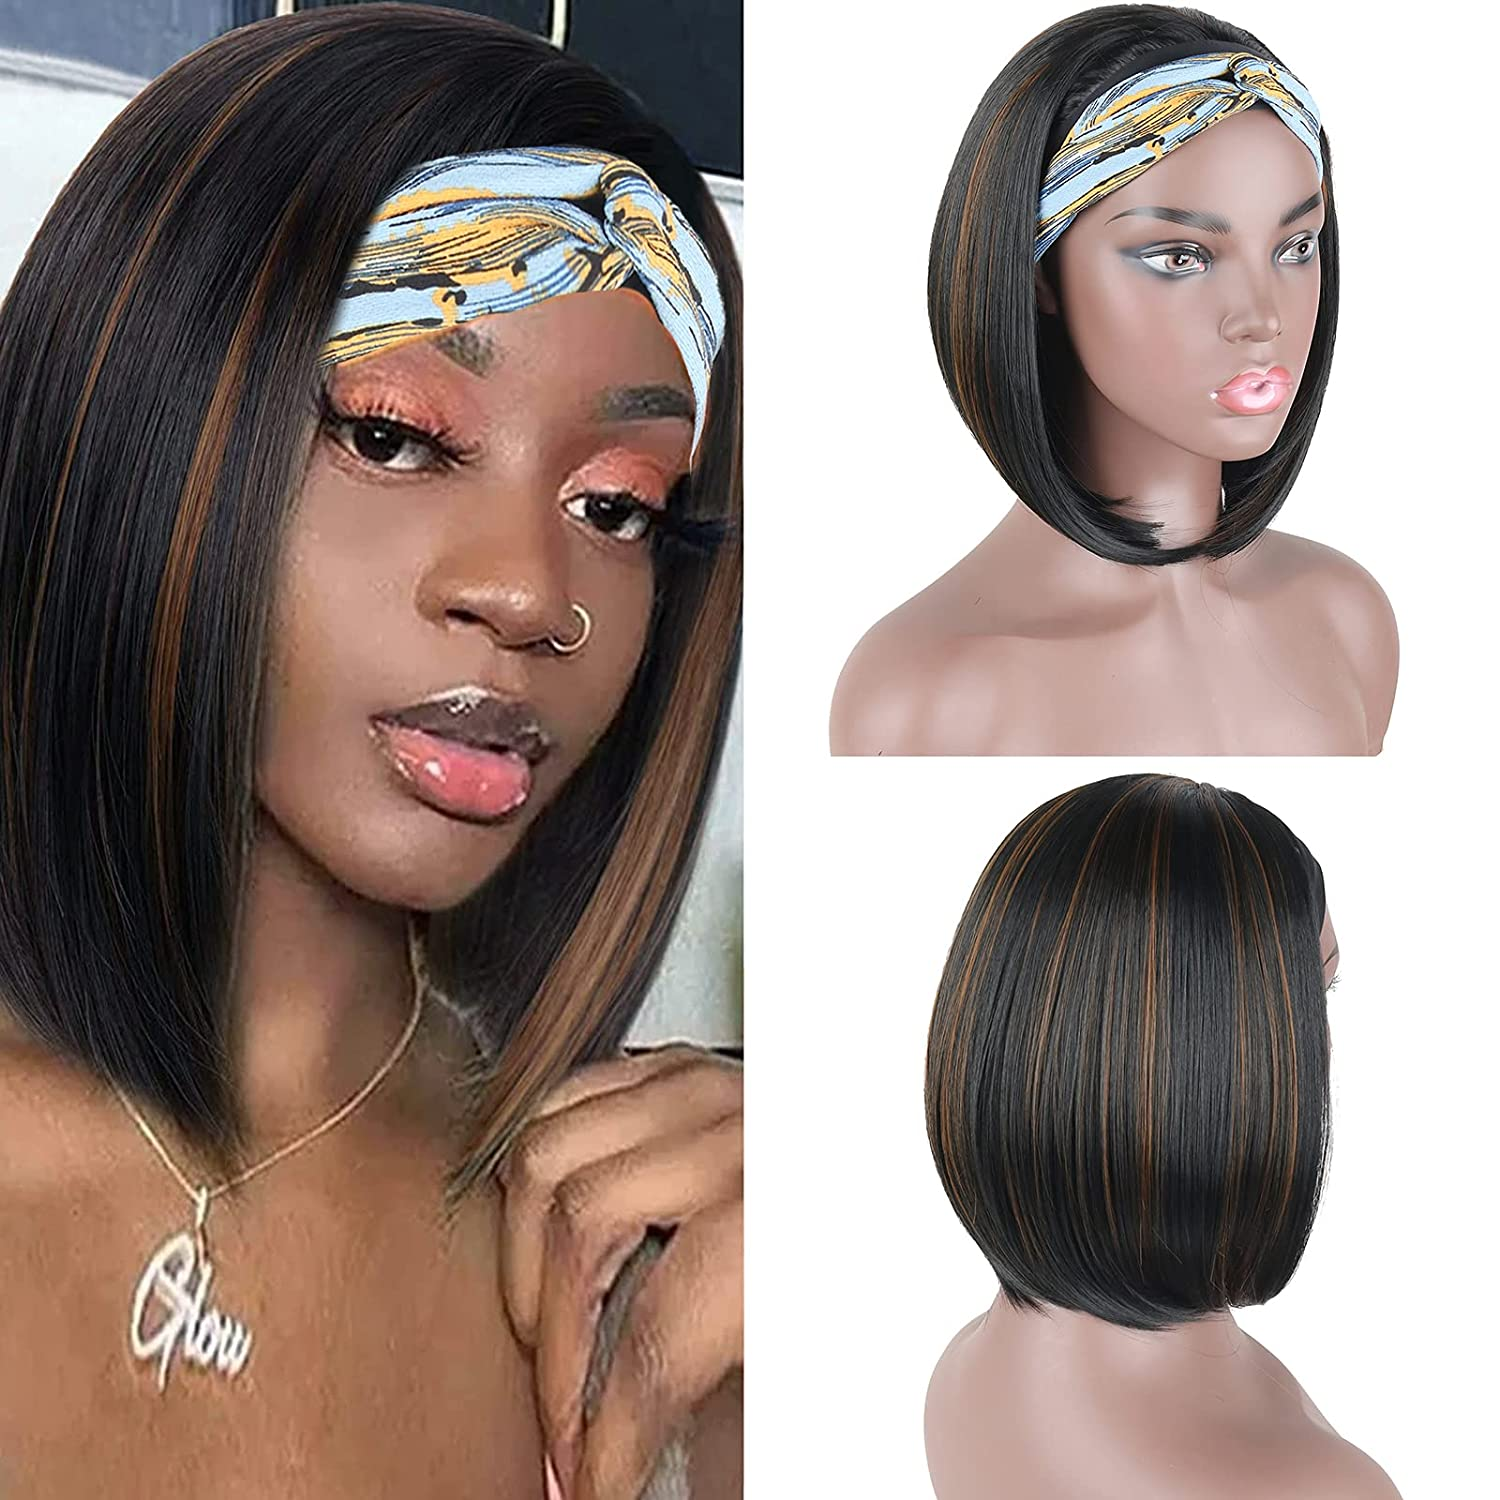 Afro Straight Bob Headband Wig Synthetic Wigs For Black Women Machine Made Mix Blonde Looks Natural Daily Use